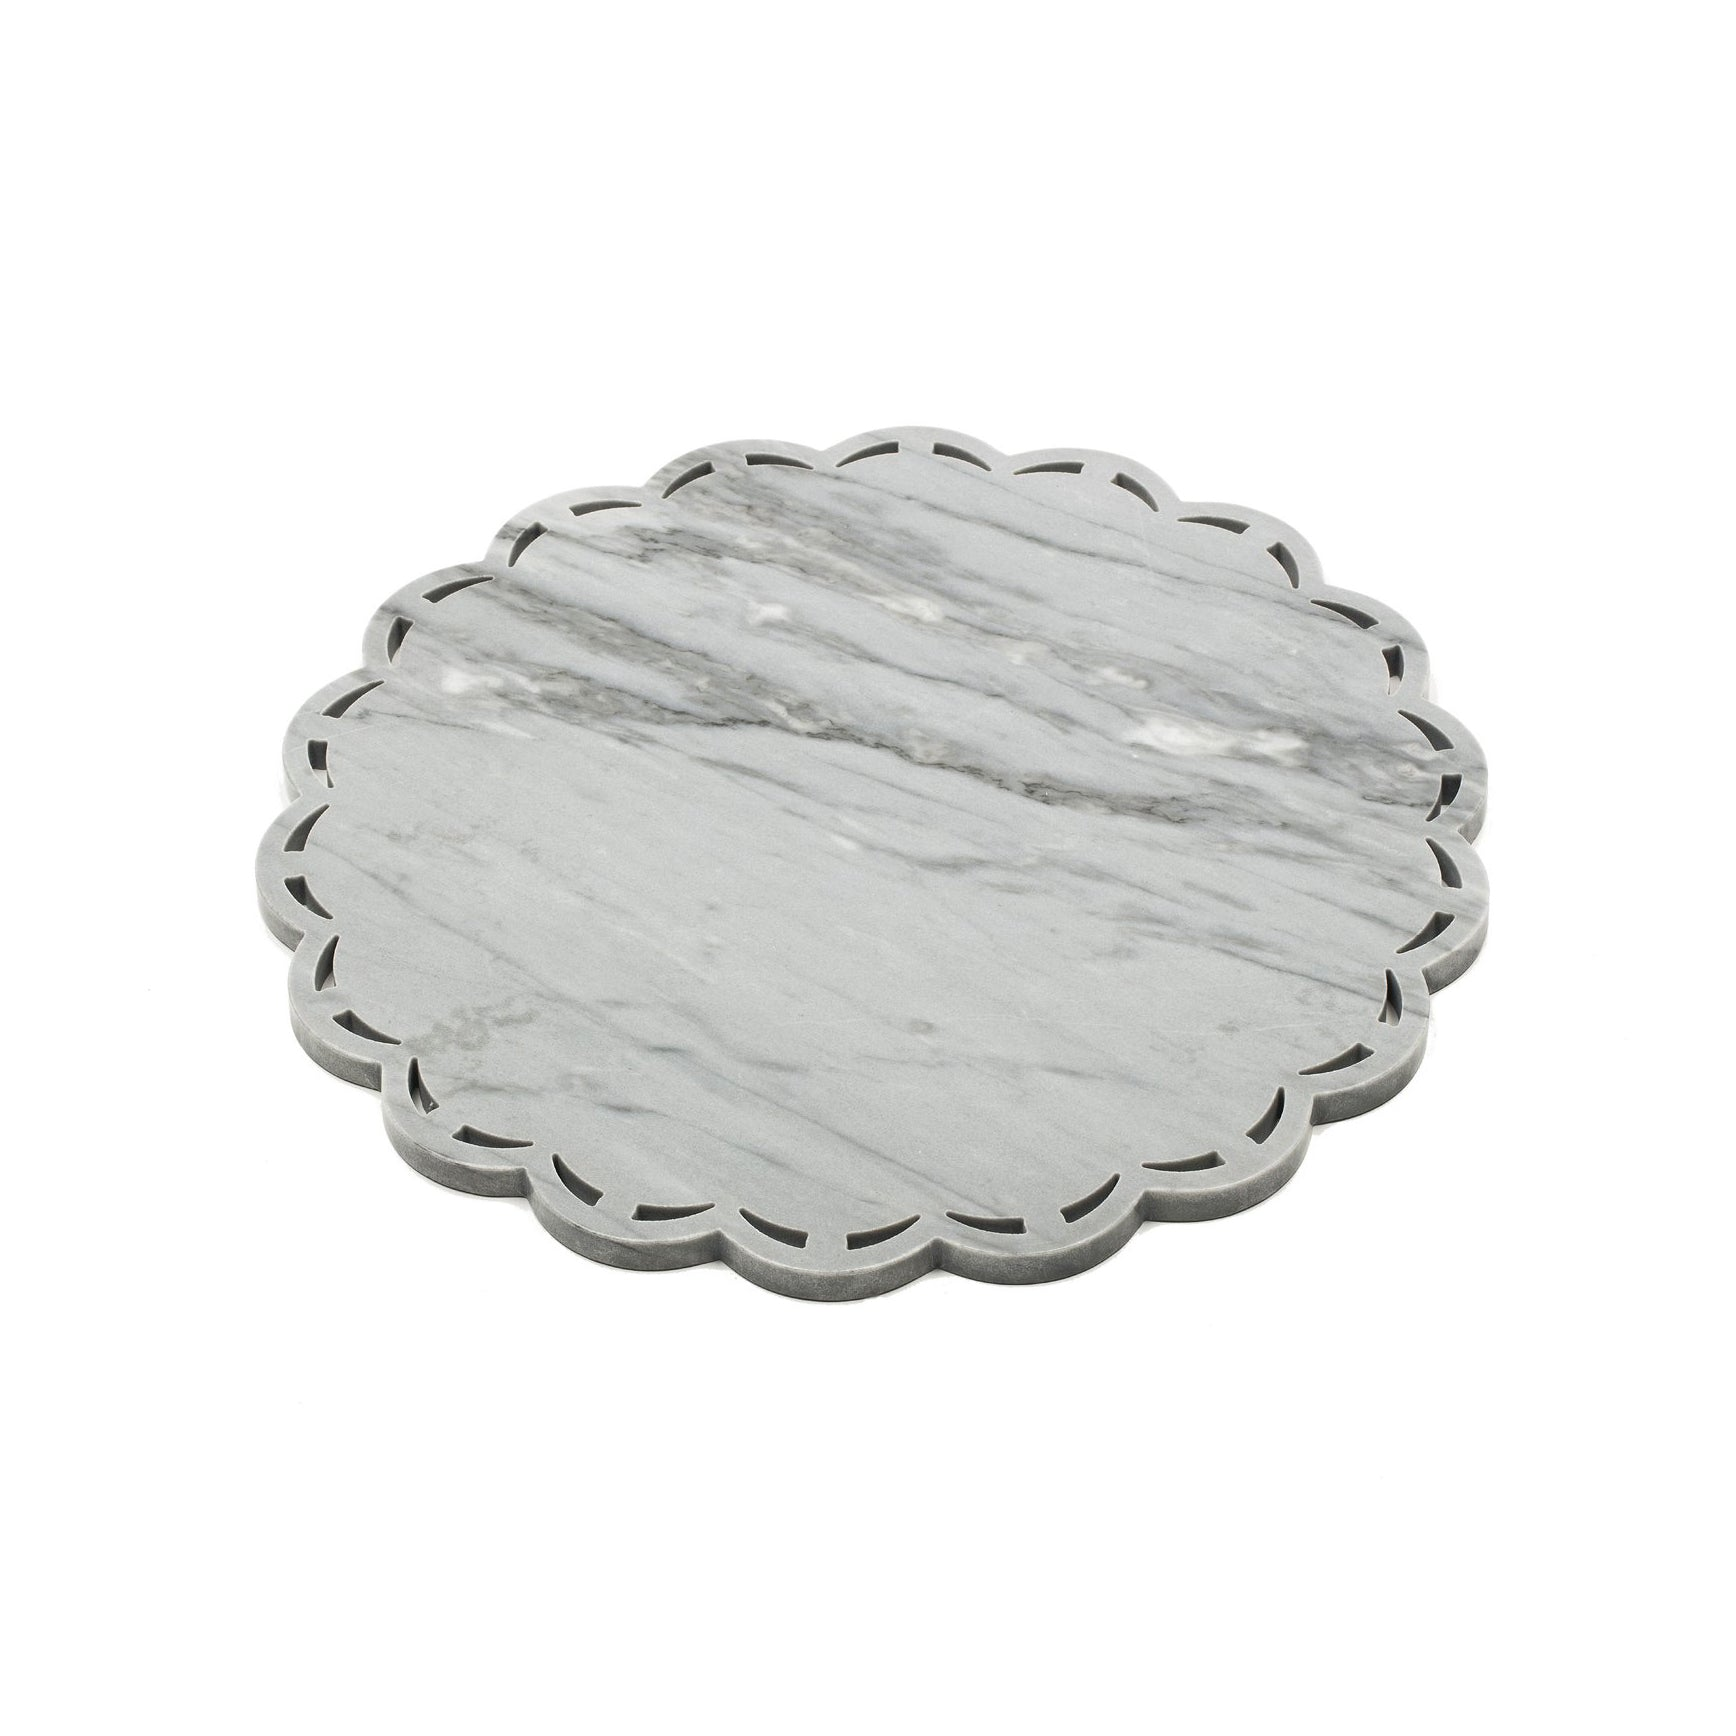 Round Marble Tray or Plate with Lace Edge